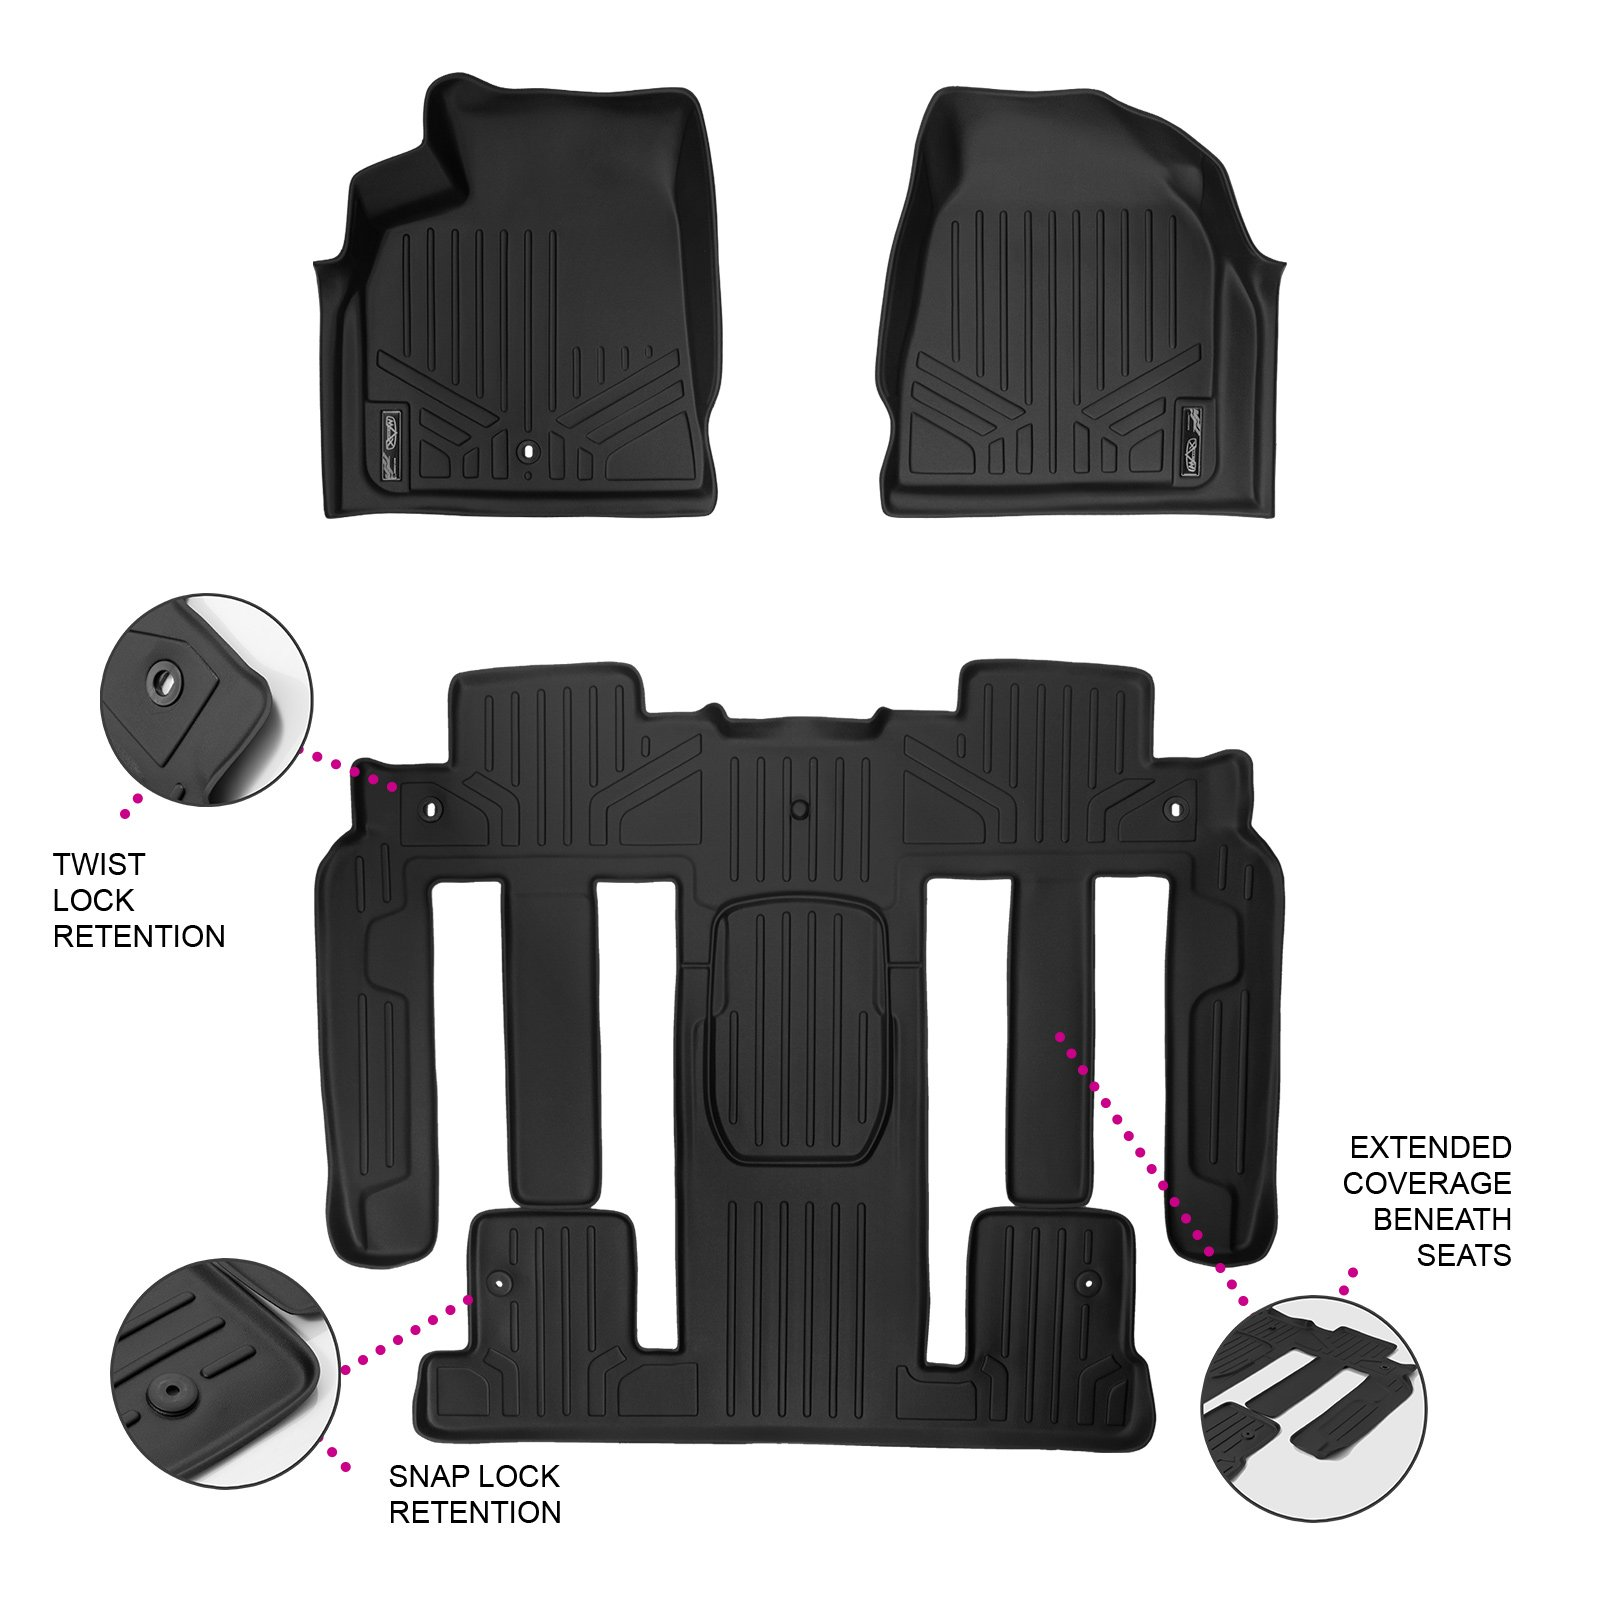 SMARTLINER Floor Mats 2 Row Liner Set Black for Traverse/Enclave/Acadia/Outlook (with 2nd Row Bucket Seats)